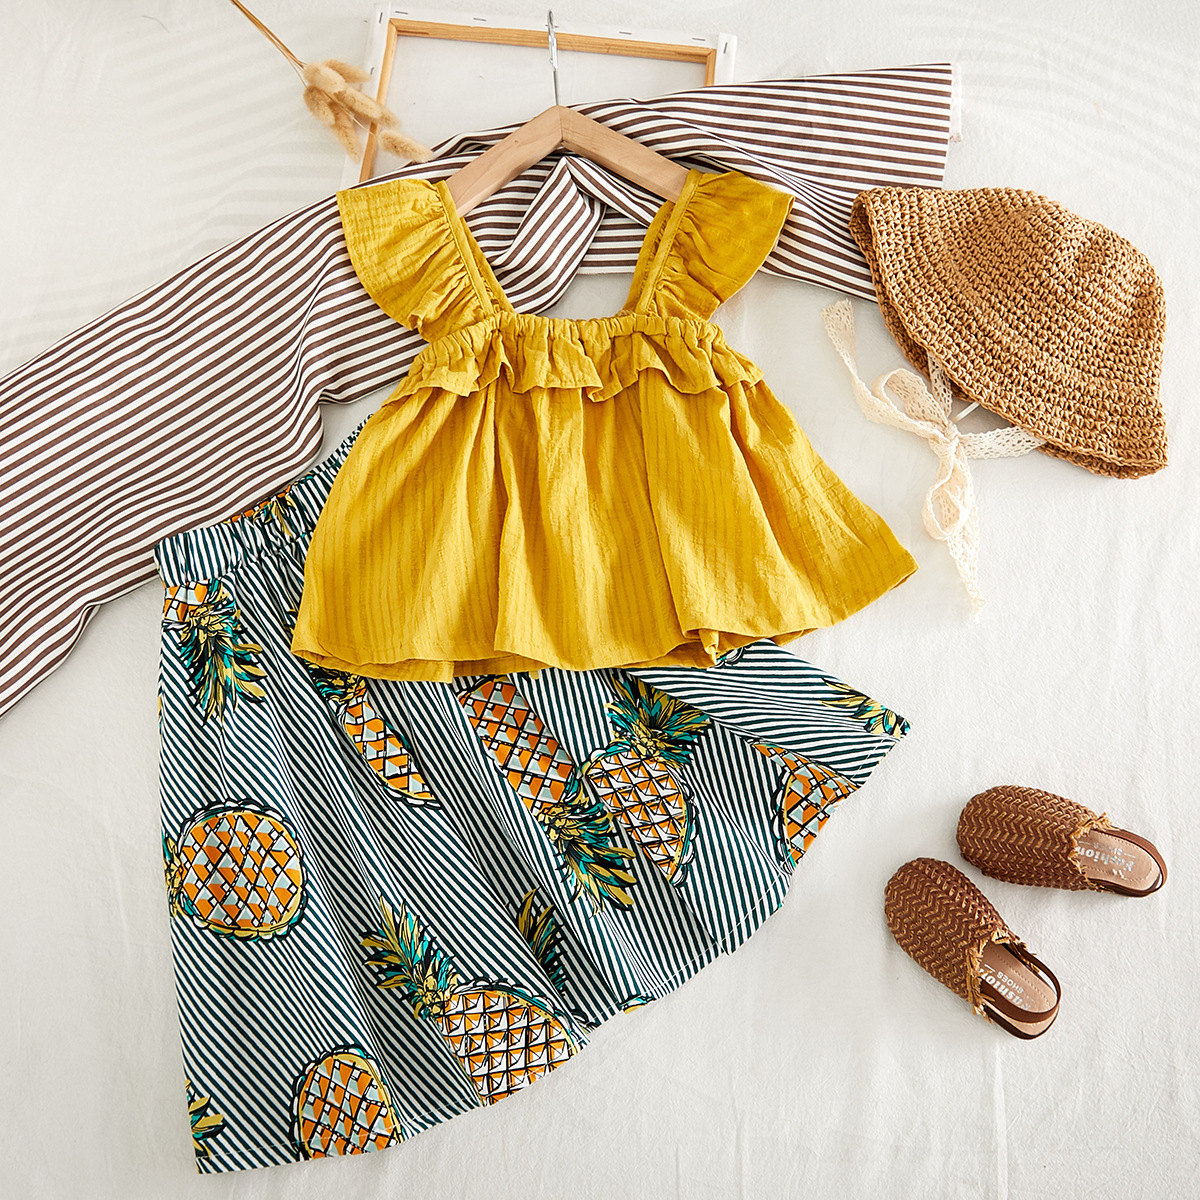 Fashion Girls Clothes Set Summer Solid Ruffles Shirt & Pineapple Skirt Fashion Suit For Baby Girl Children Classic Clothes Set